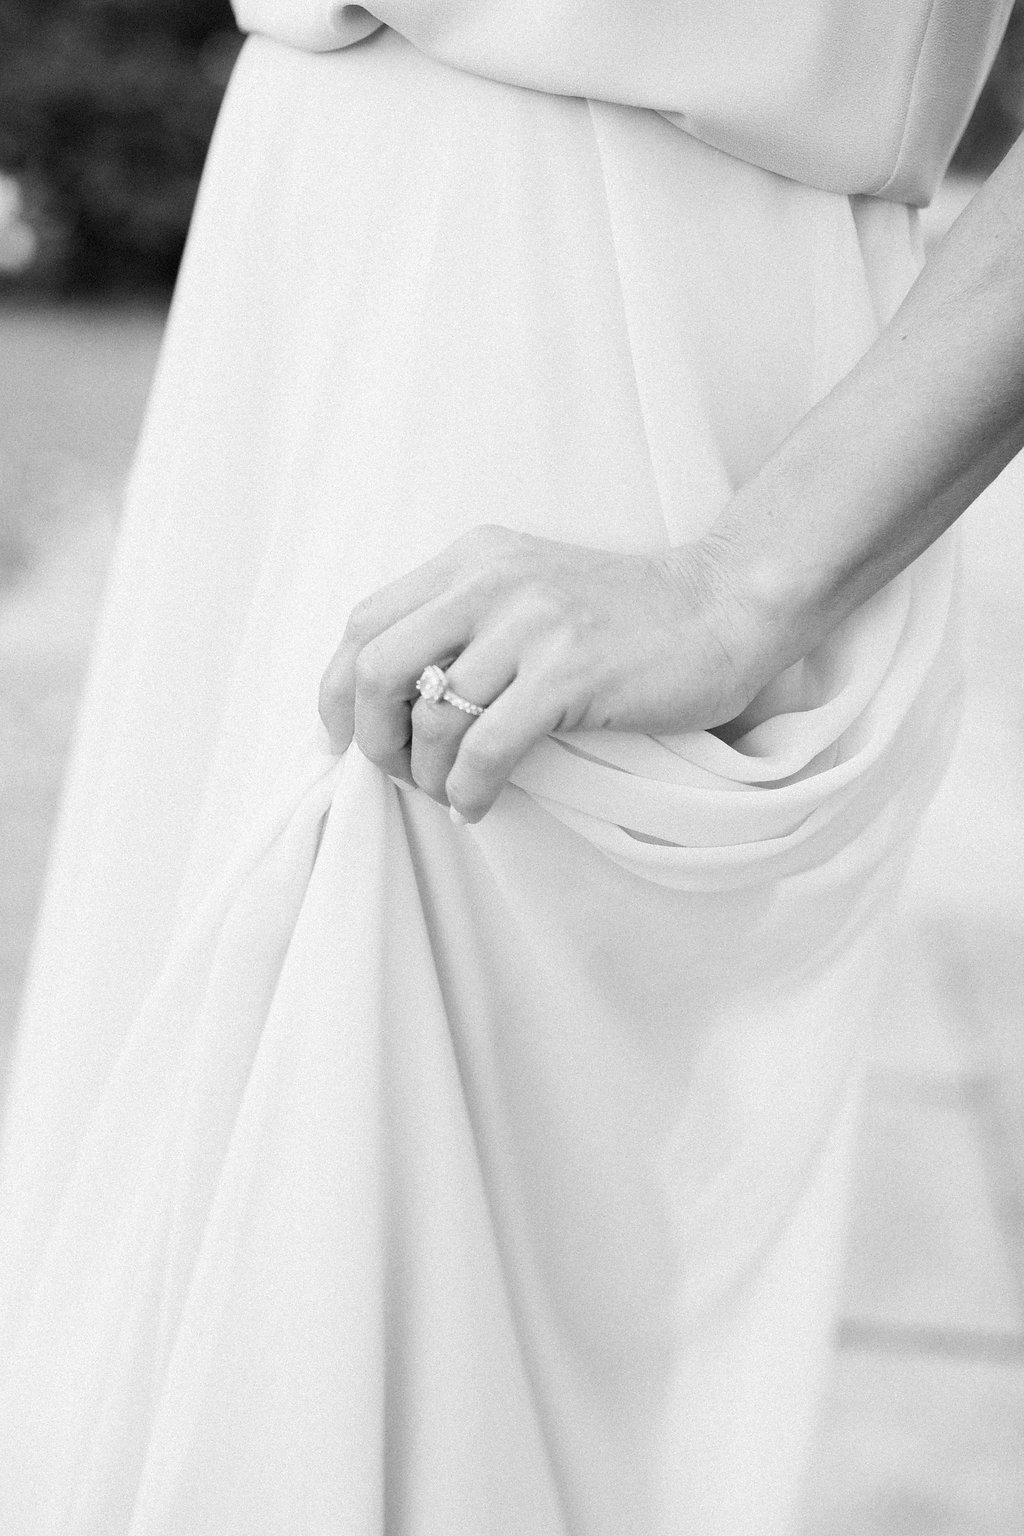 Close up of woman's engagement ring as she lightly grabs her skirt